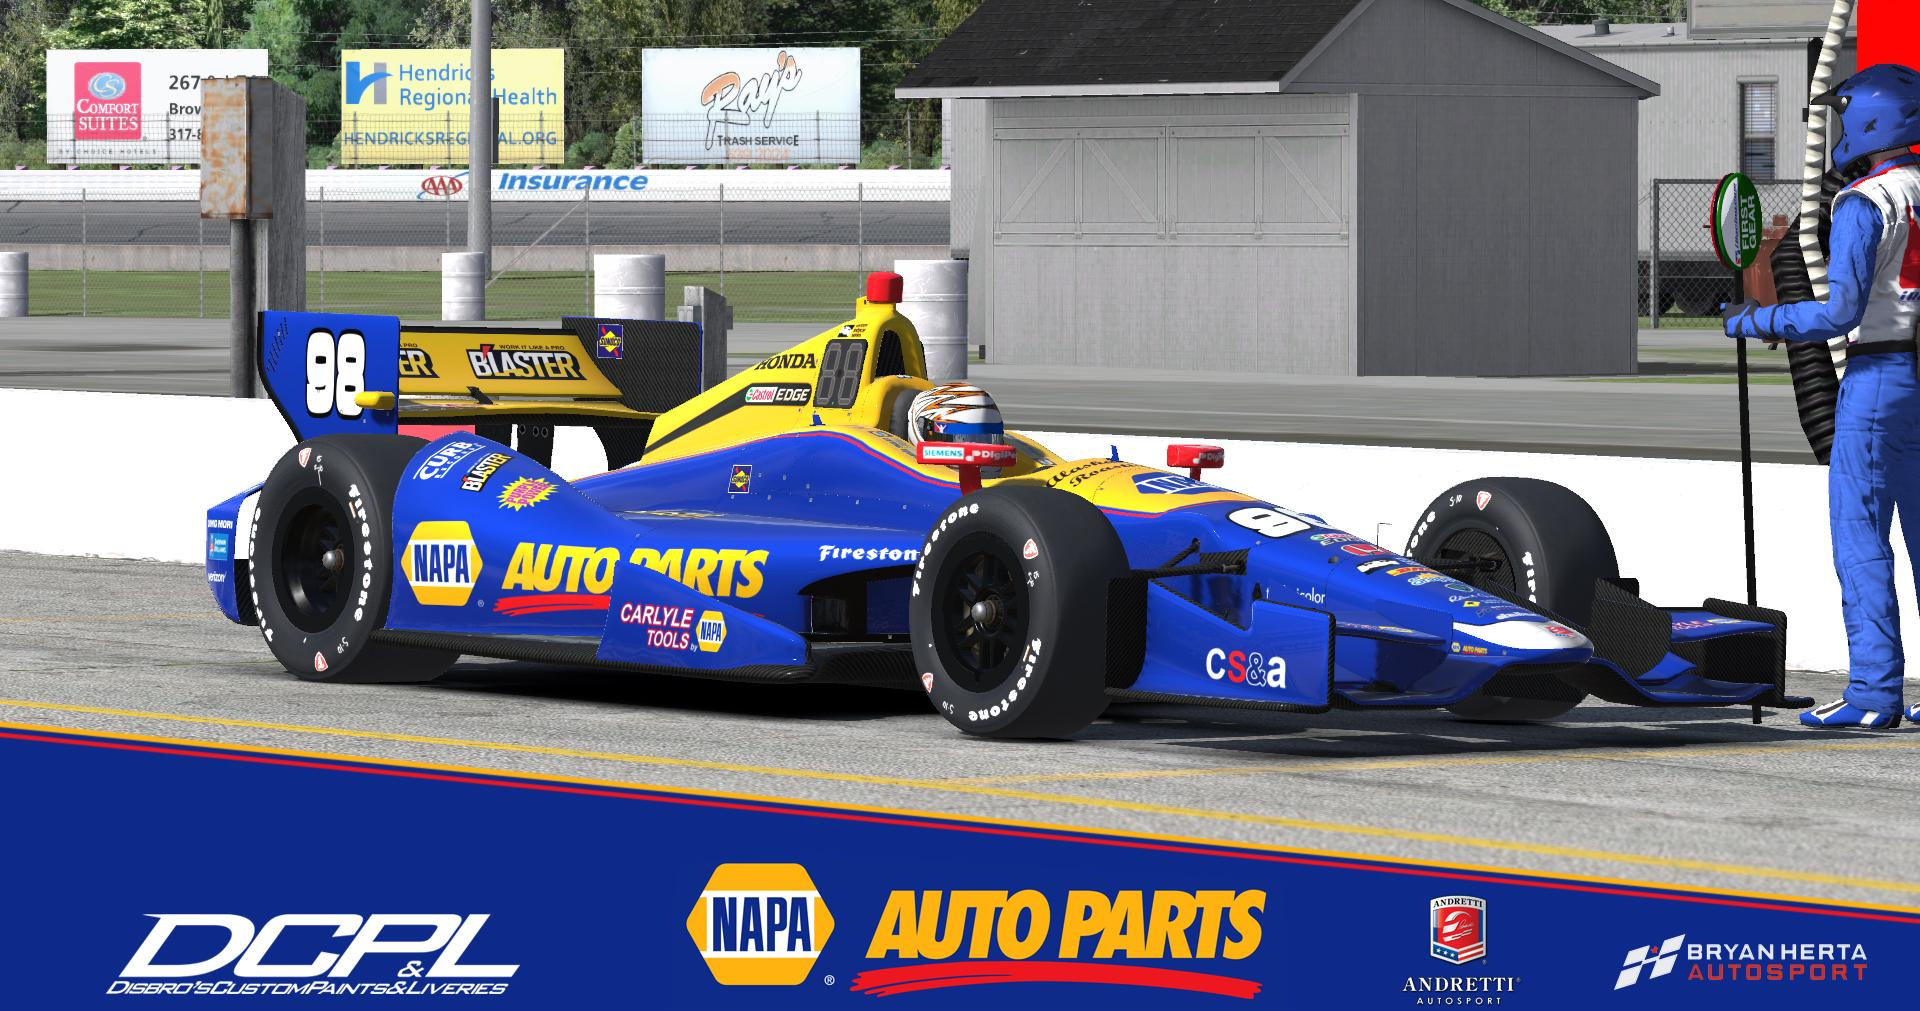 Preview of Alexander Rossi NAPA DW12  by Sean Disbro2